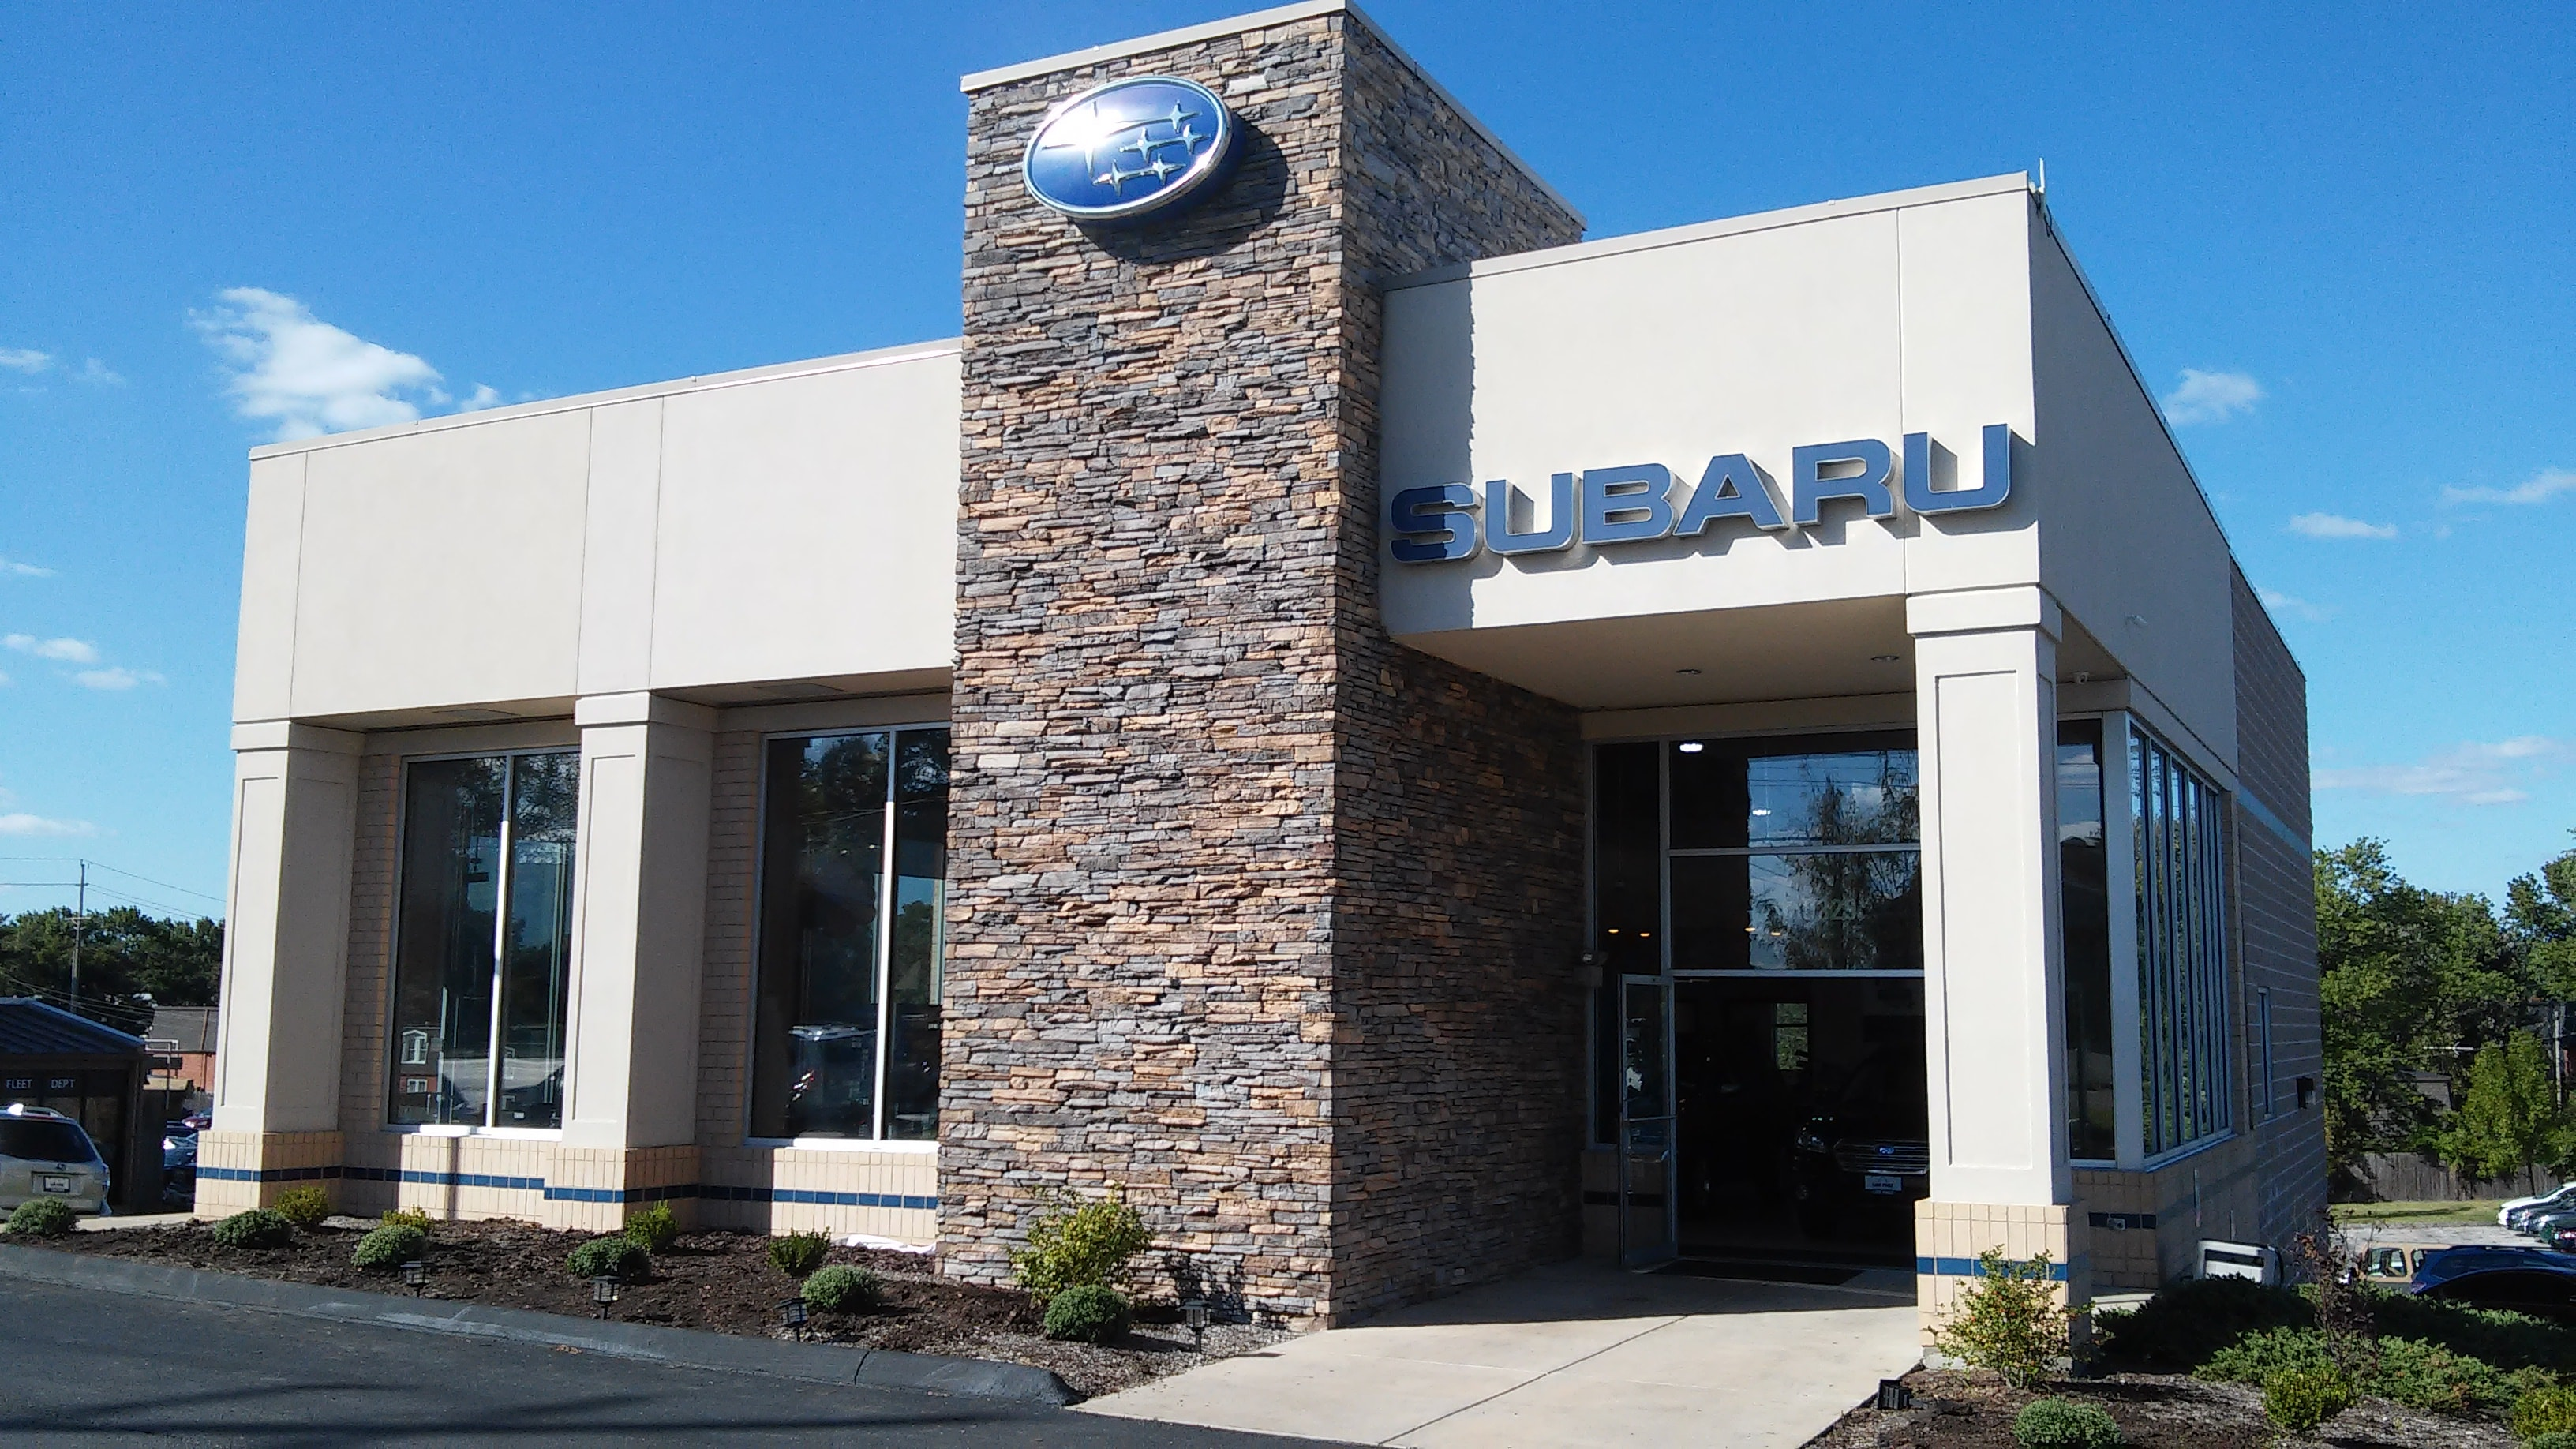 creve coeur subaru car maintenance lou fusz subaru service auto repair dept in creve coeur. Black Bedroom Furniture Sets. Home Design Ideas